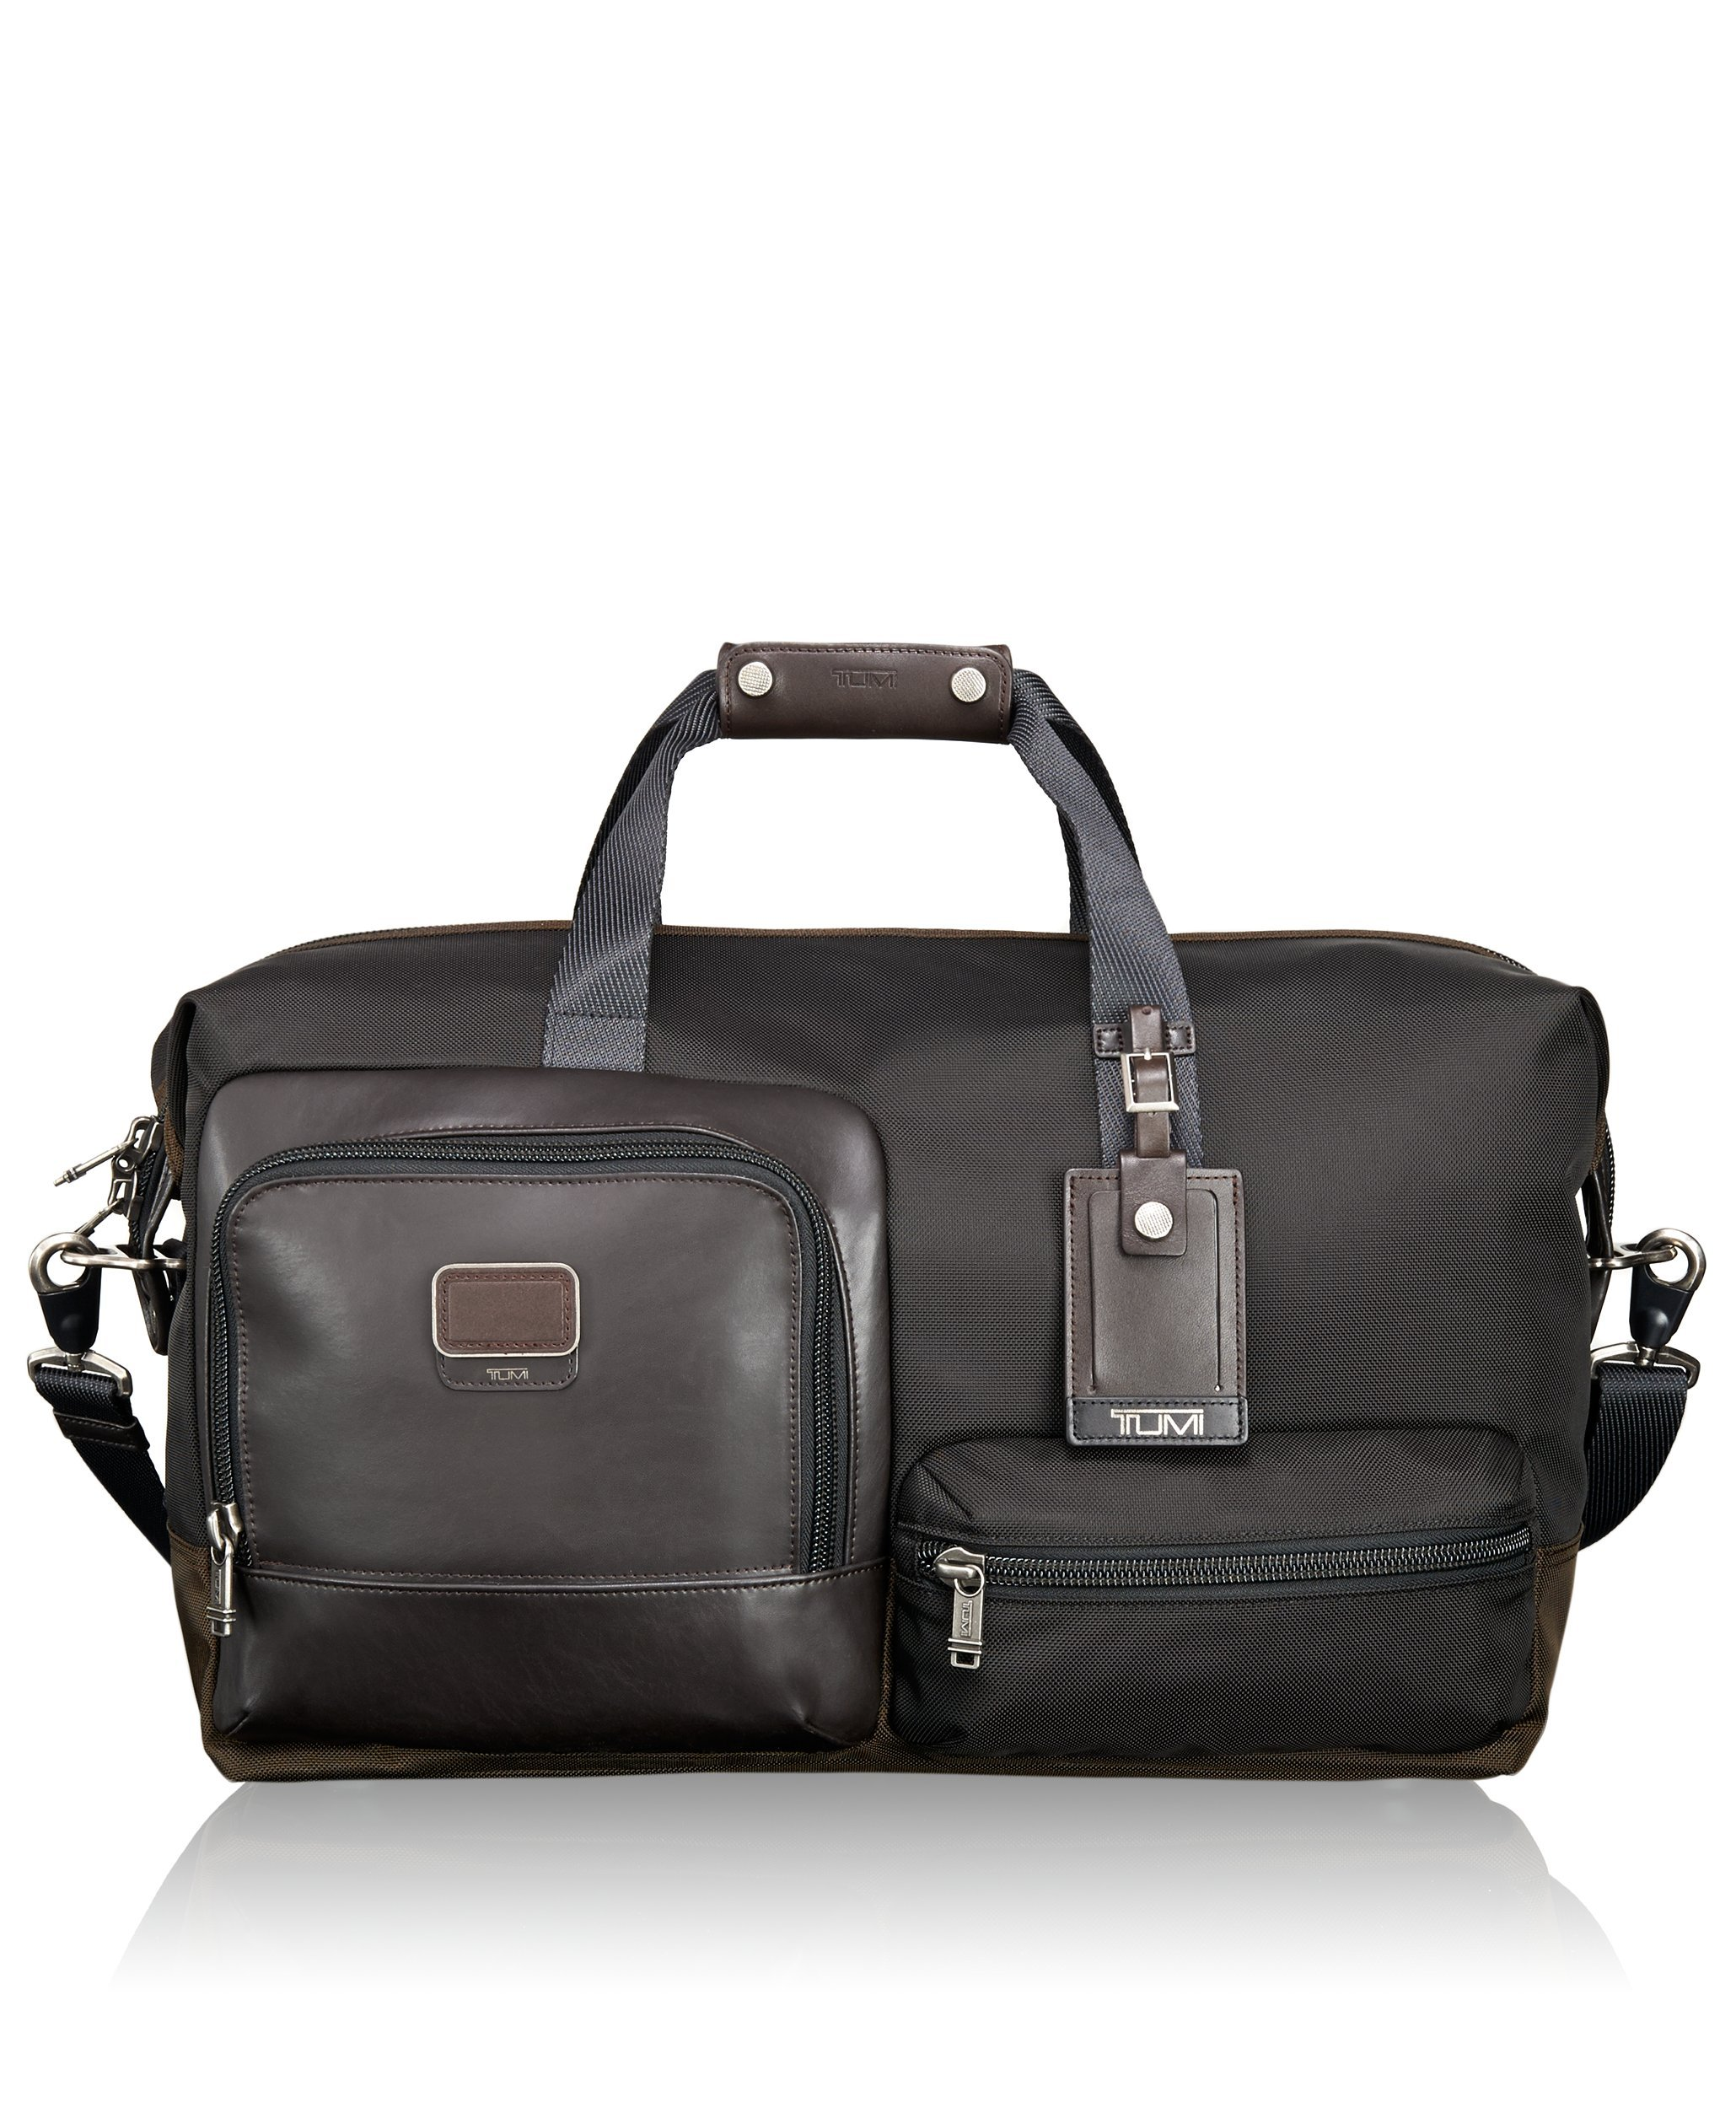 Tumi Alpha Bravo Grissom Travel Satchel, Hickory, One Size by Tumi